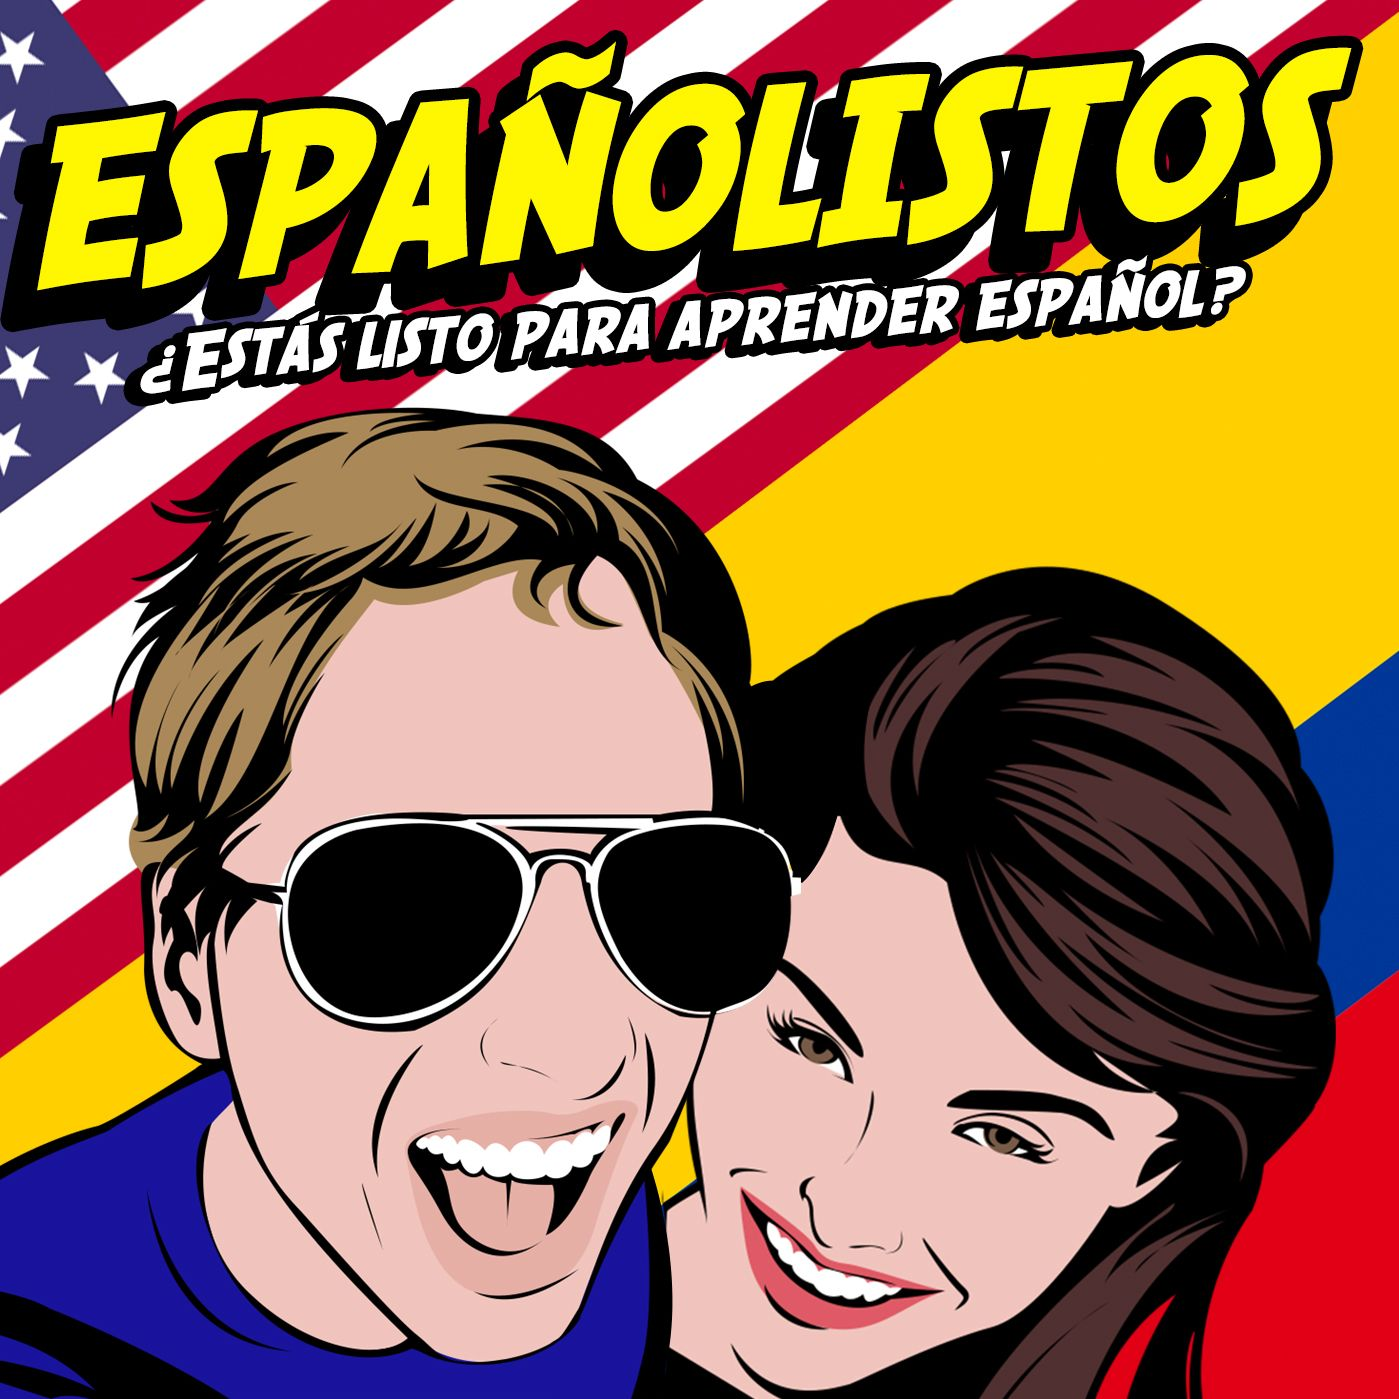 Episodio 078 - 10 Maneras Efectivas De Aprender Español (10 Ways to Learn Spanish)